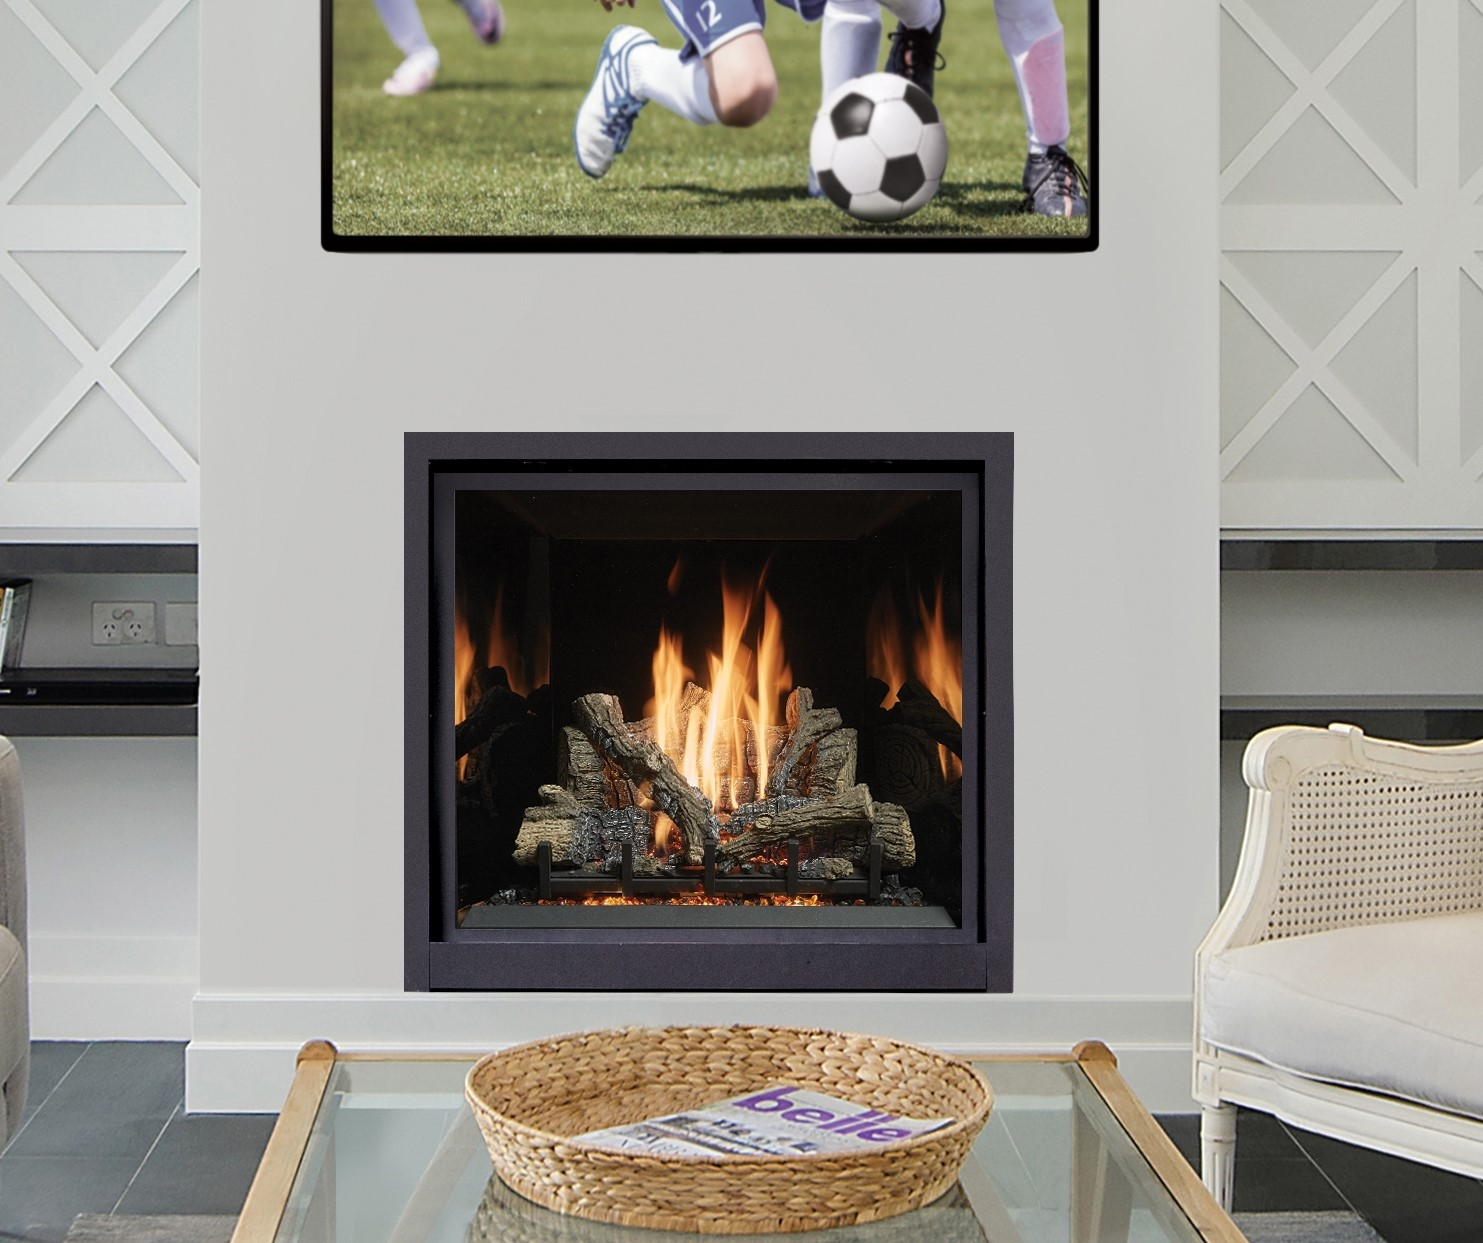 Image of a Travis Industries Gas Fireplaces which links to our Gas Fireplace page.